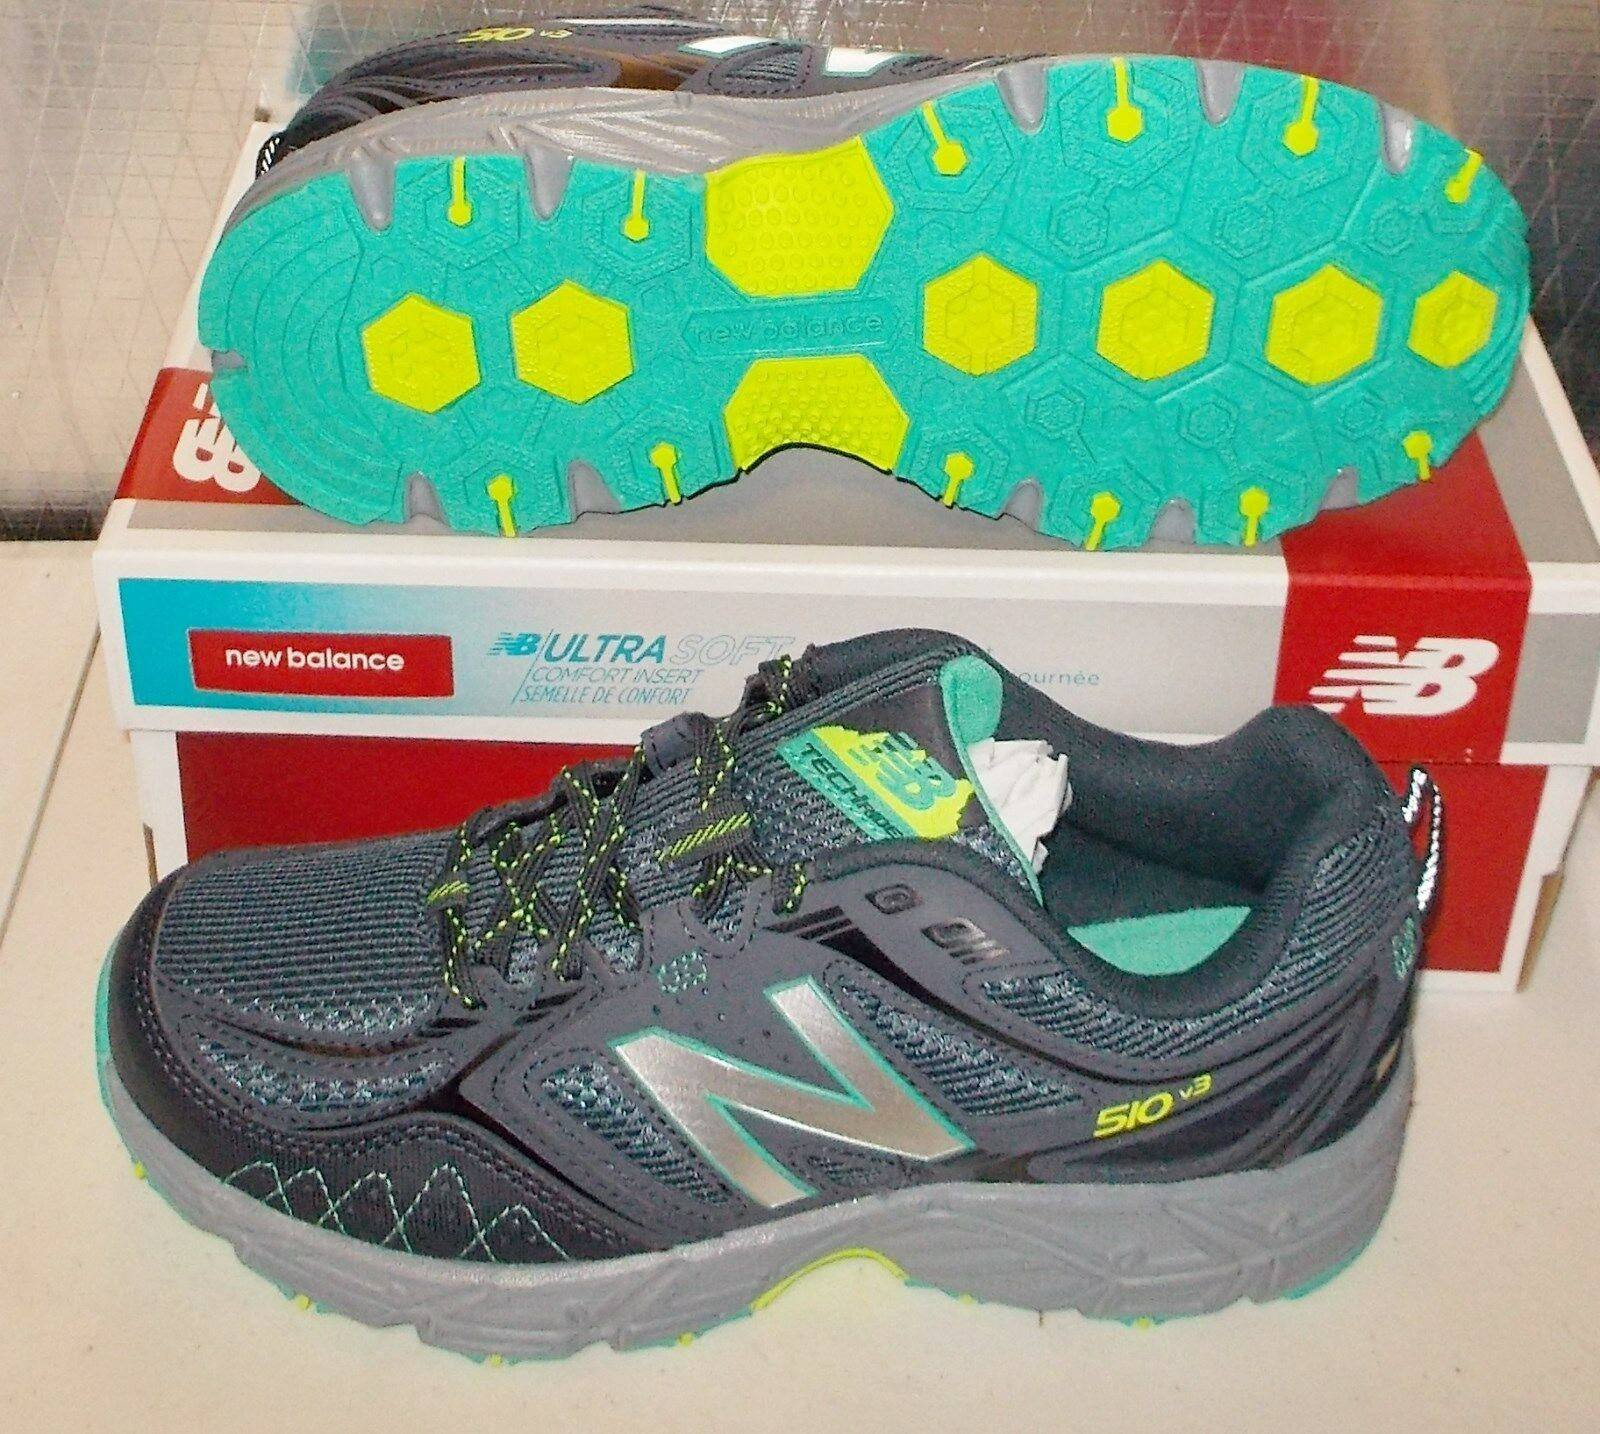 NEW BALANCE 510 510v3 Womens D WIDE WIDE WIDE WIDTH Trail Running WT510LB3 NEW a9c8eb